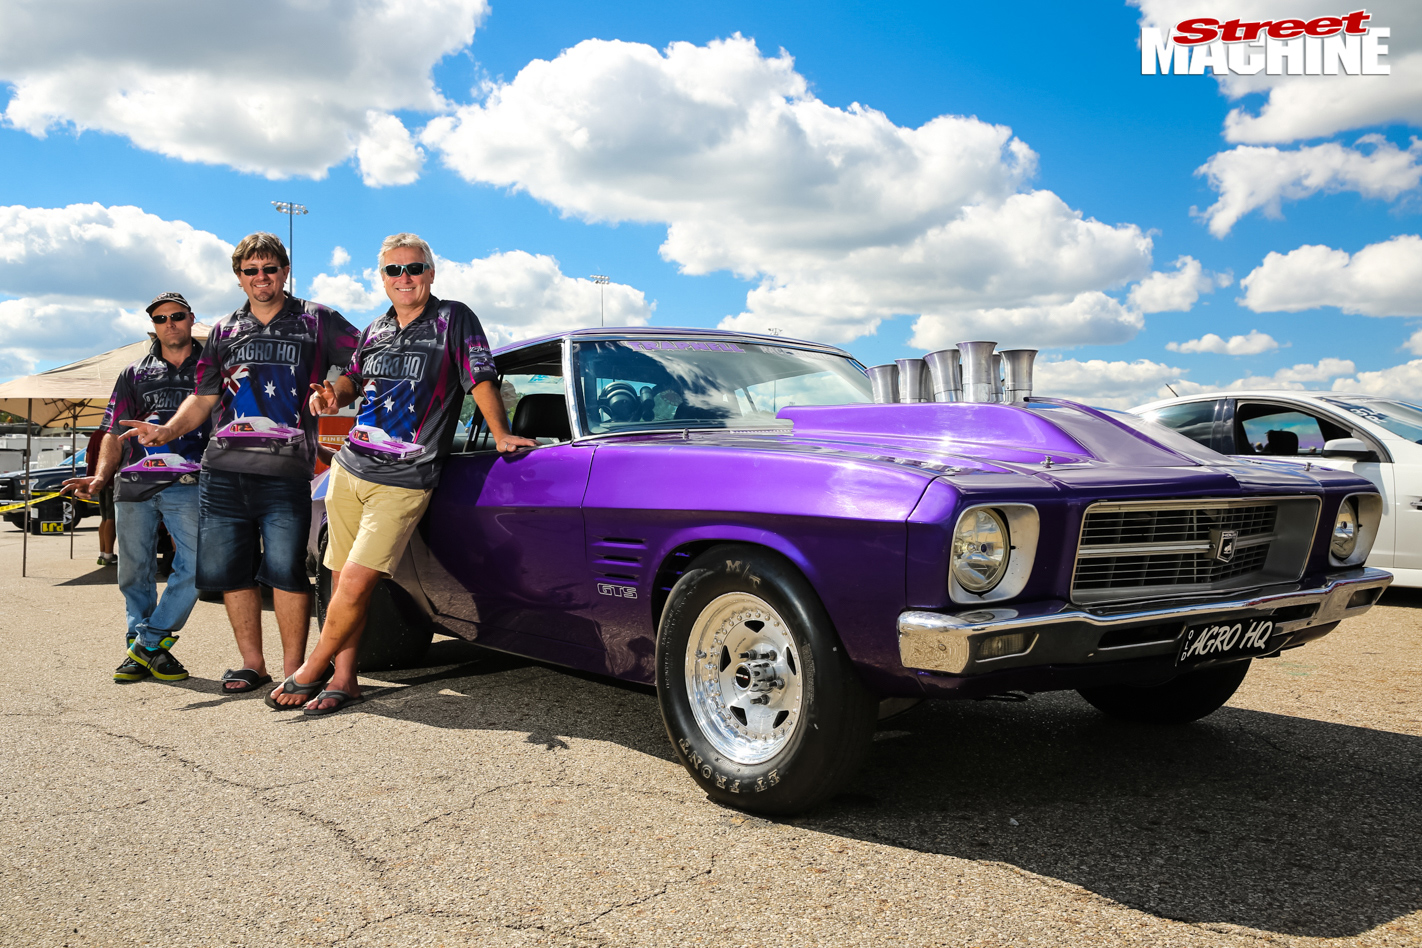 1408-Drag Week _NJ_Low Res _026_1408